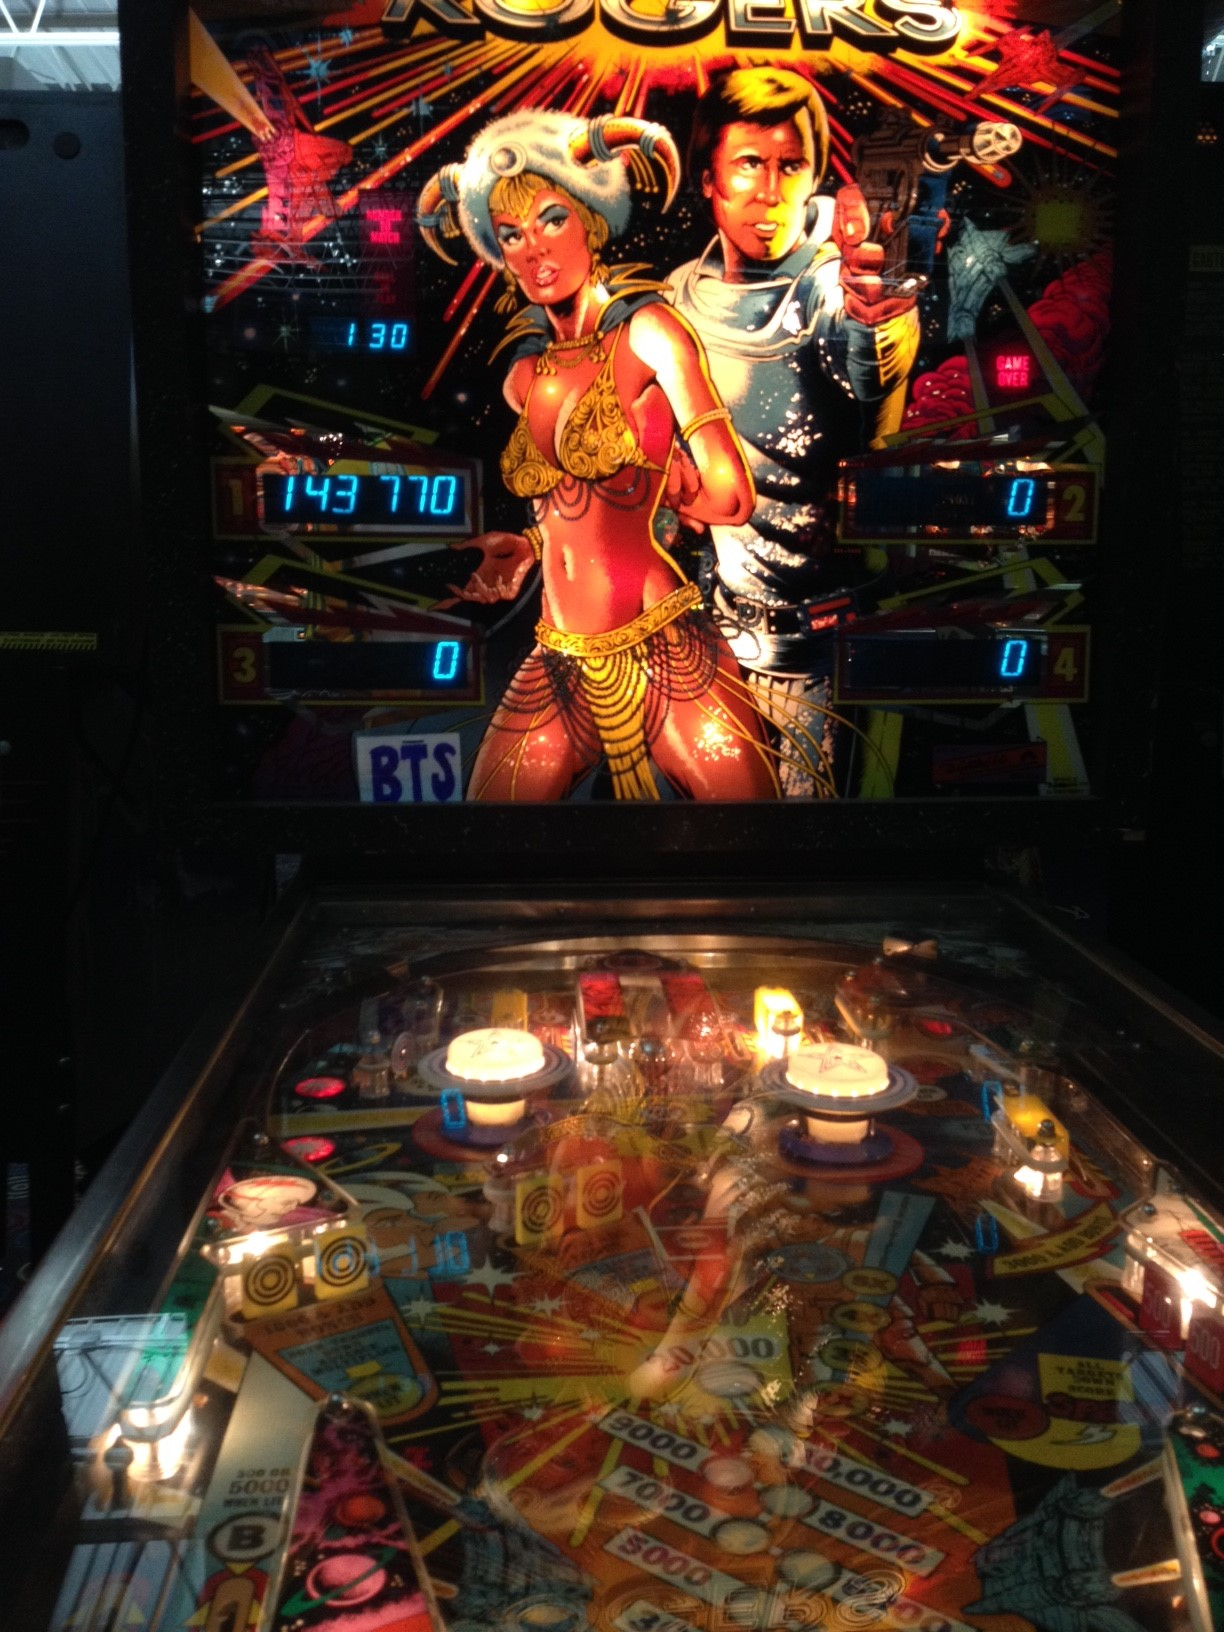 bensweeneyonbass: Buck Rogers (Pinball: 3 Balls) 143,770 points on 2016-03-21 09:05:02